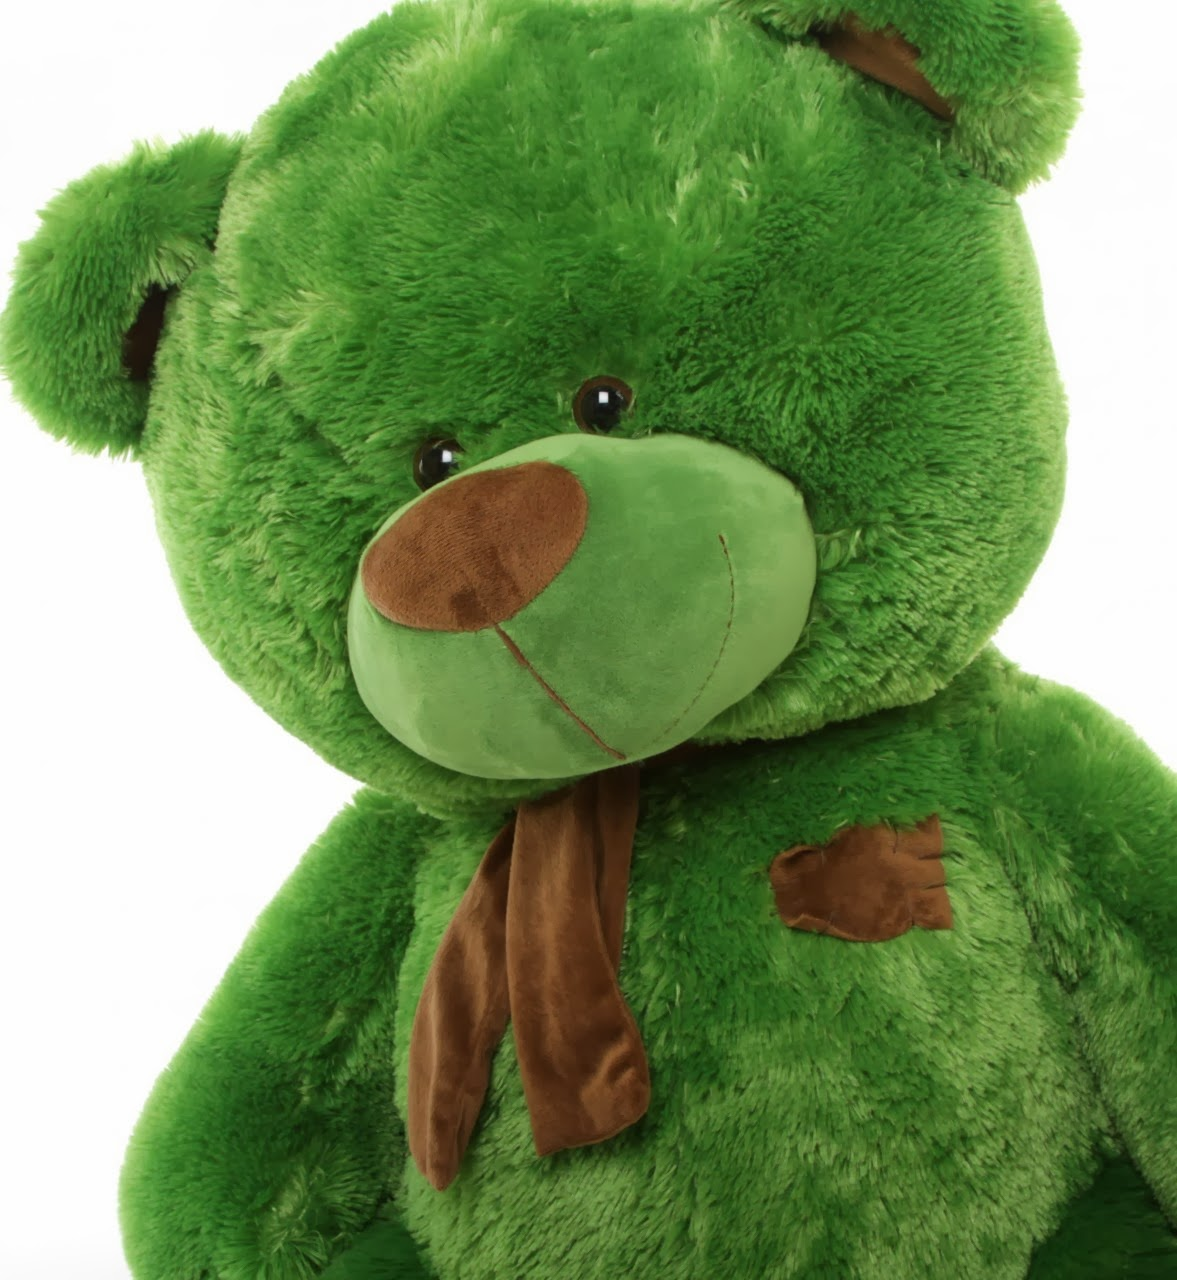 huge green teddy bear